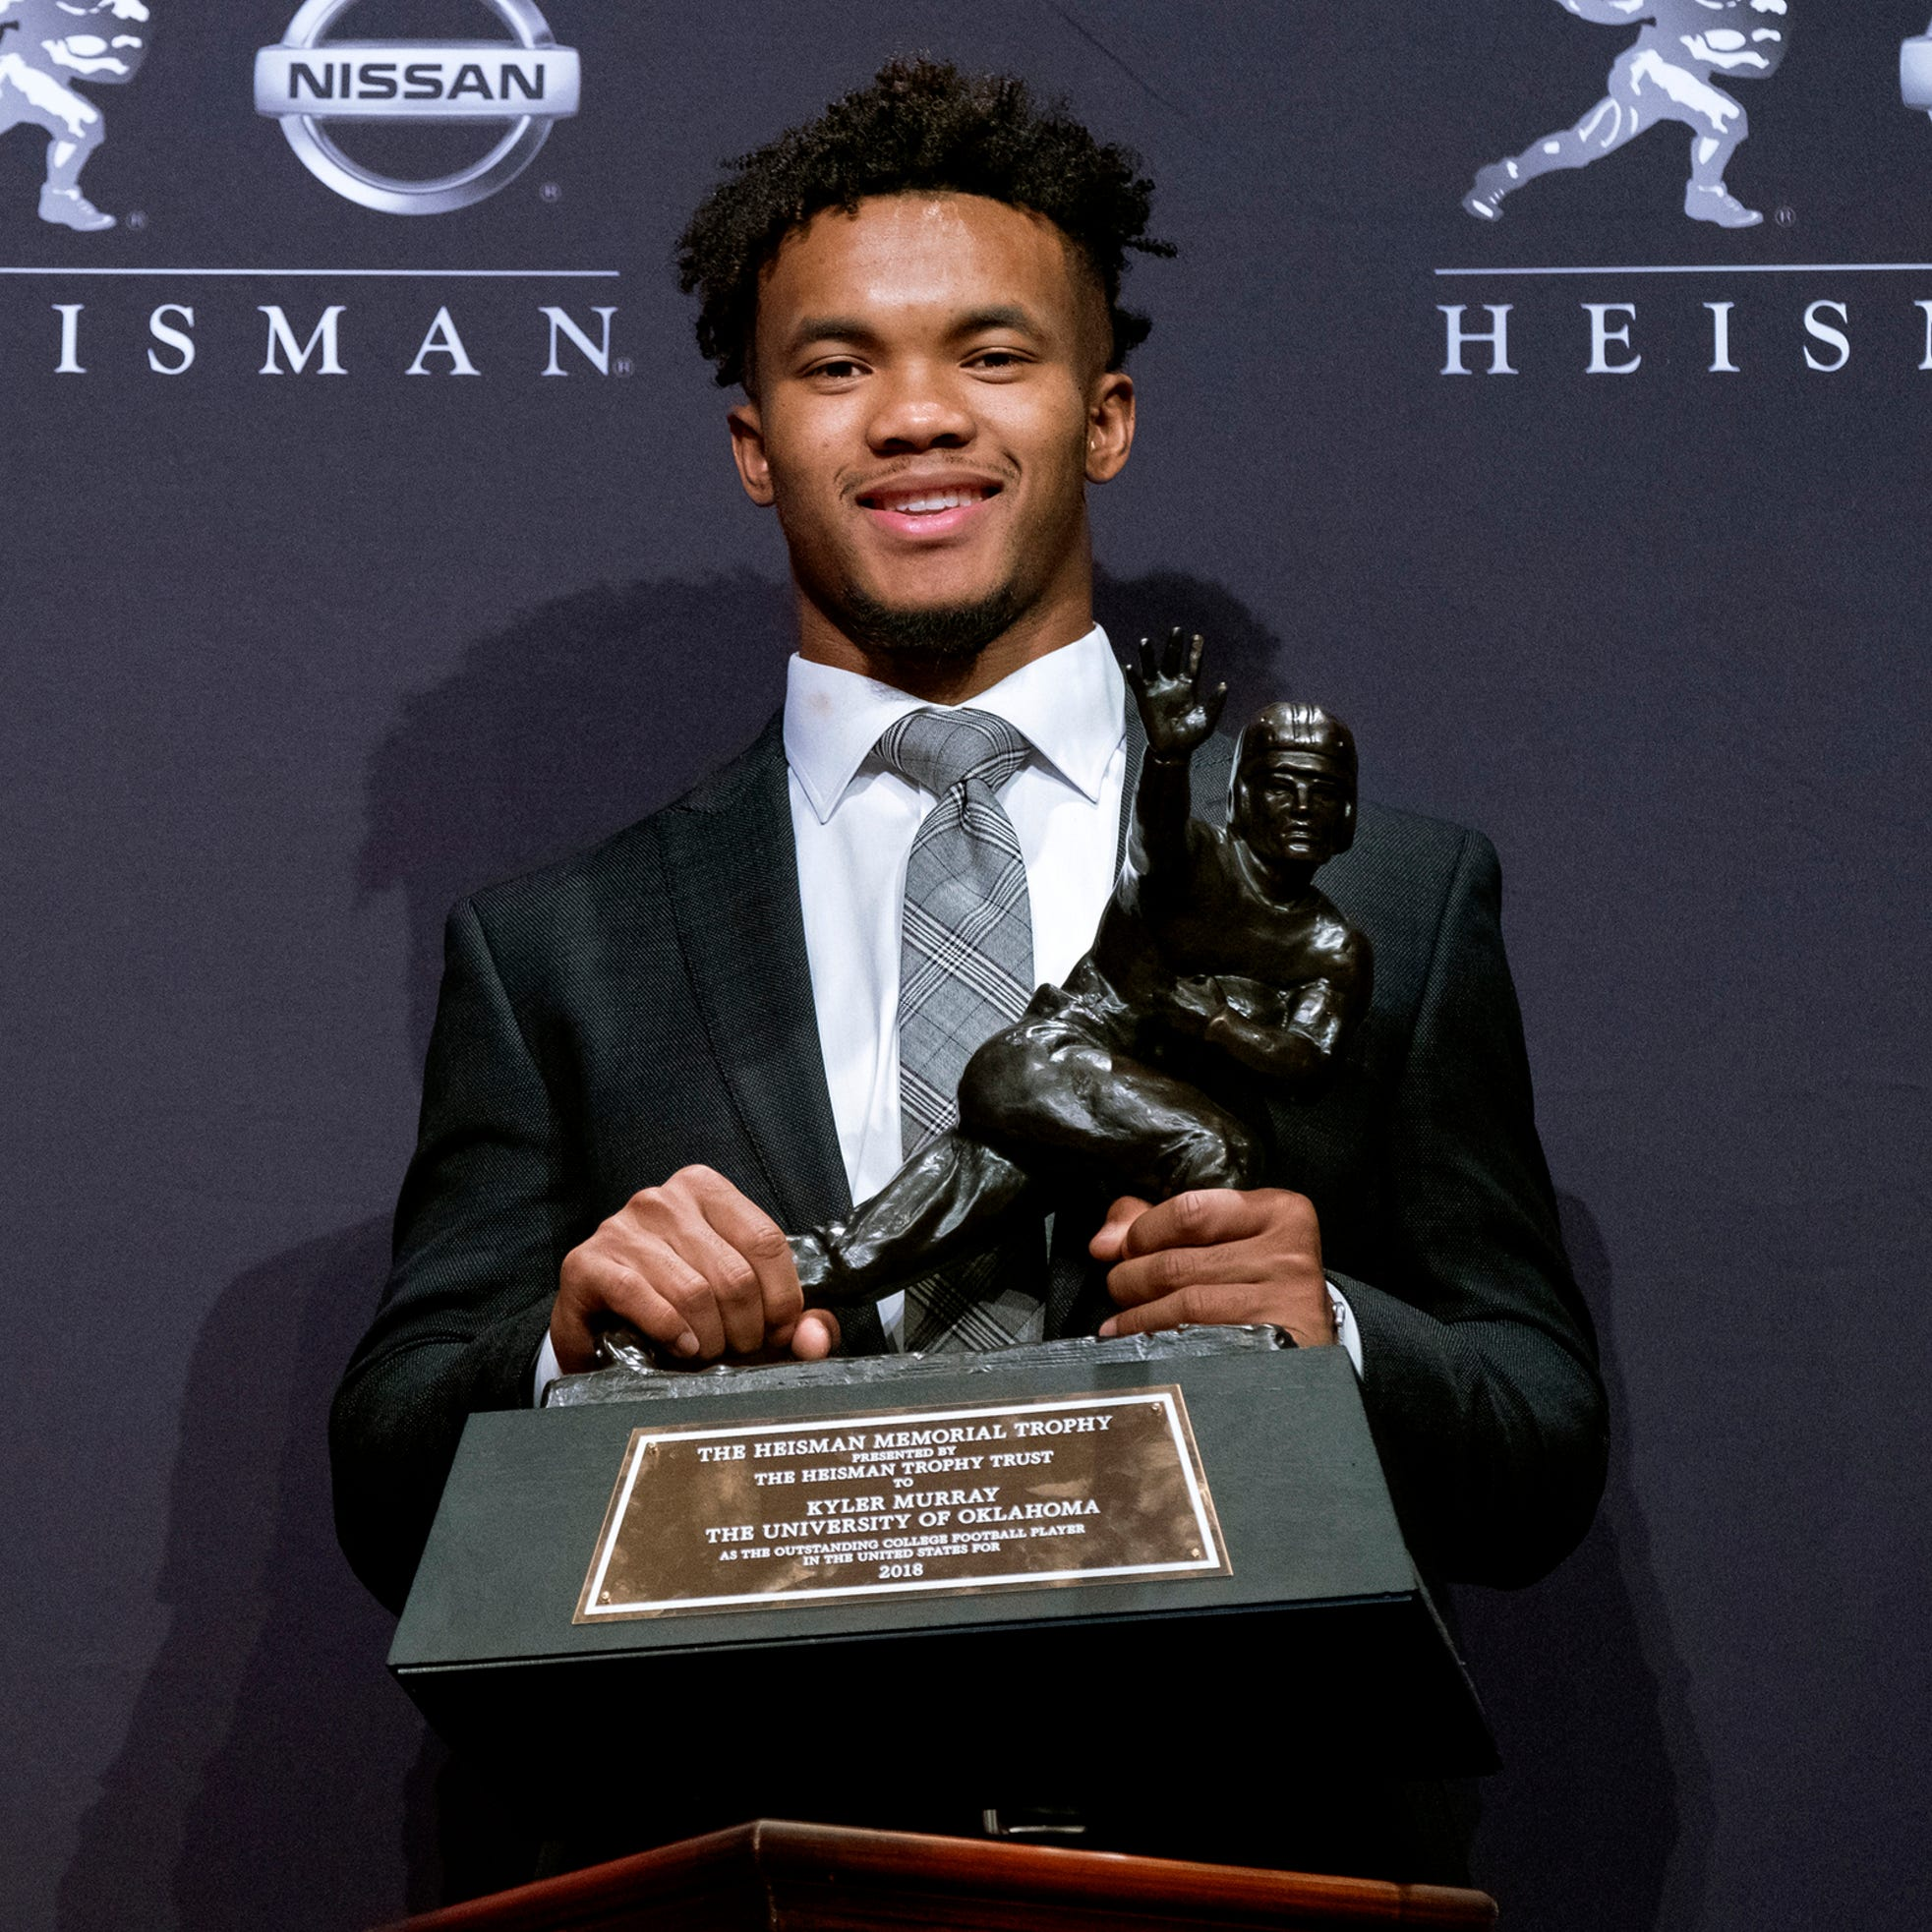 Kyler Murray billboard pushes for Arizona Cardinals to pick quarterback in 2019 NFL draft